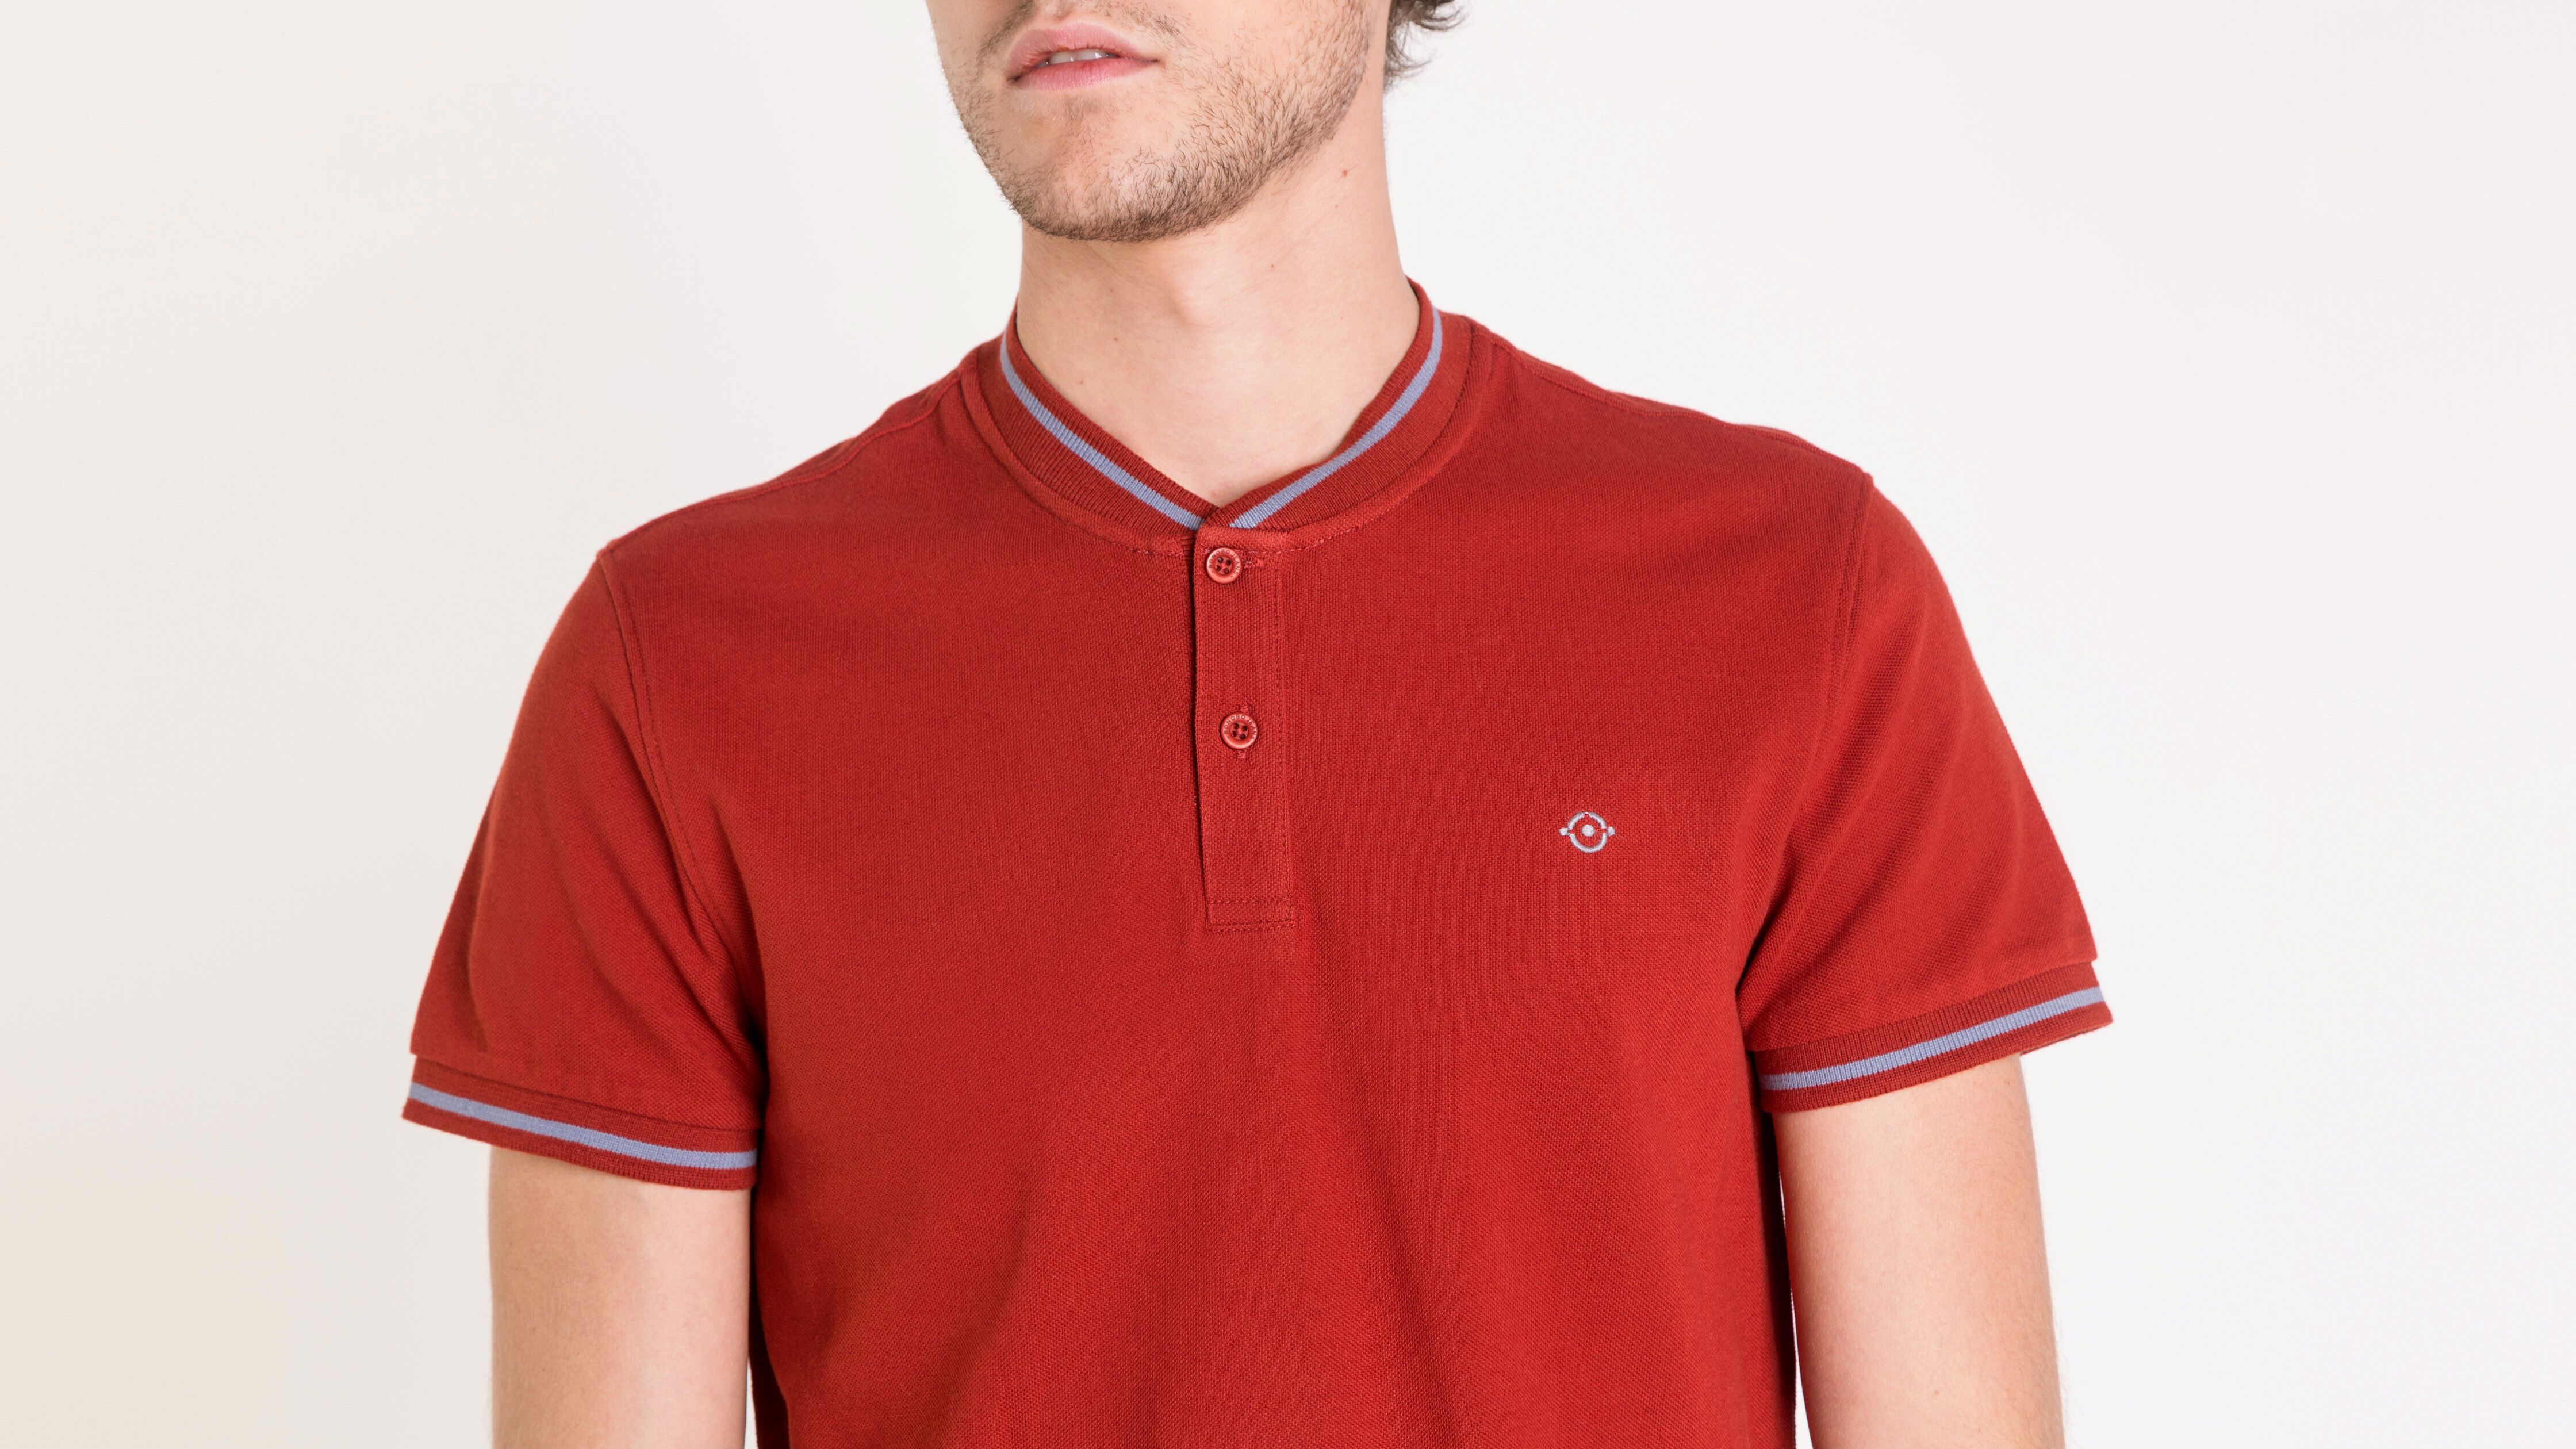 Homme Polo Col Uni Montant FoncéBonobo Rouge 7ymYbvIf6g